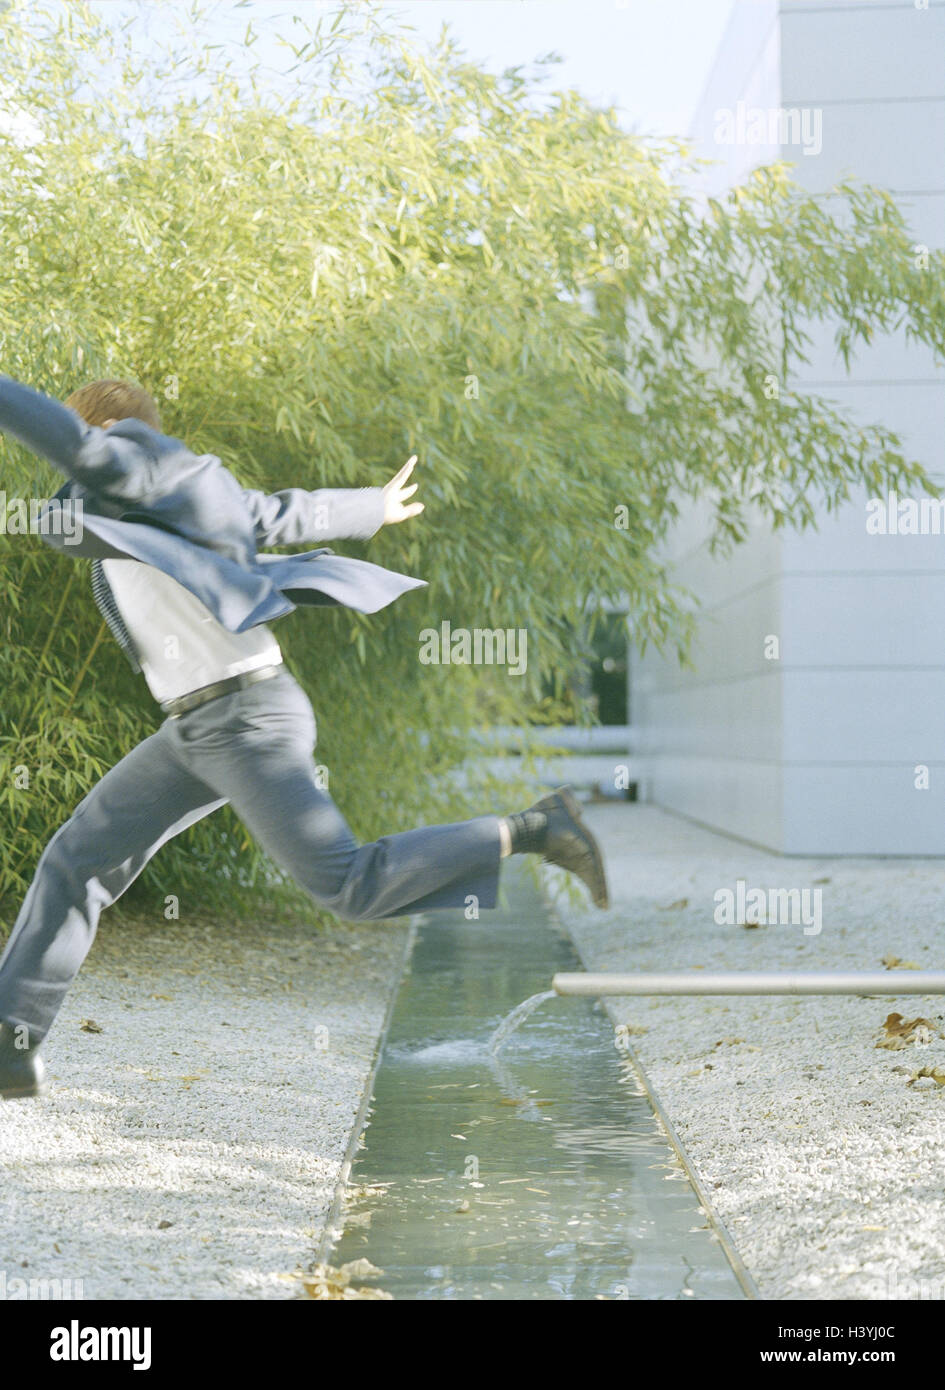 Buildings, brook, businessman, crack, man, suit, manager, waters, water, jump, overcome motion, rivlet, icon, conception, Stock Photo